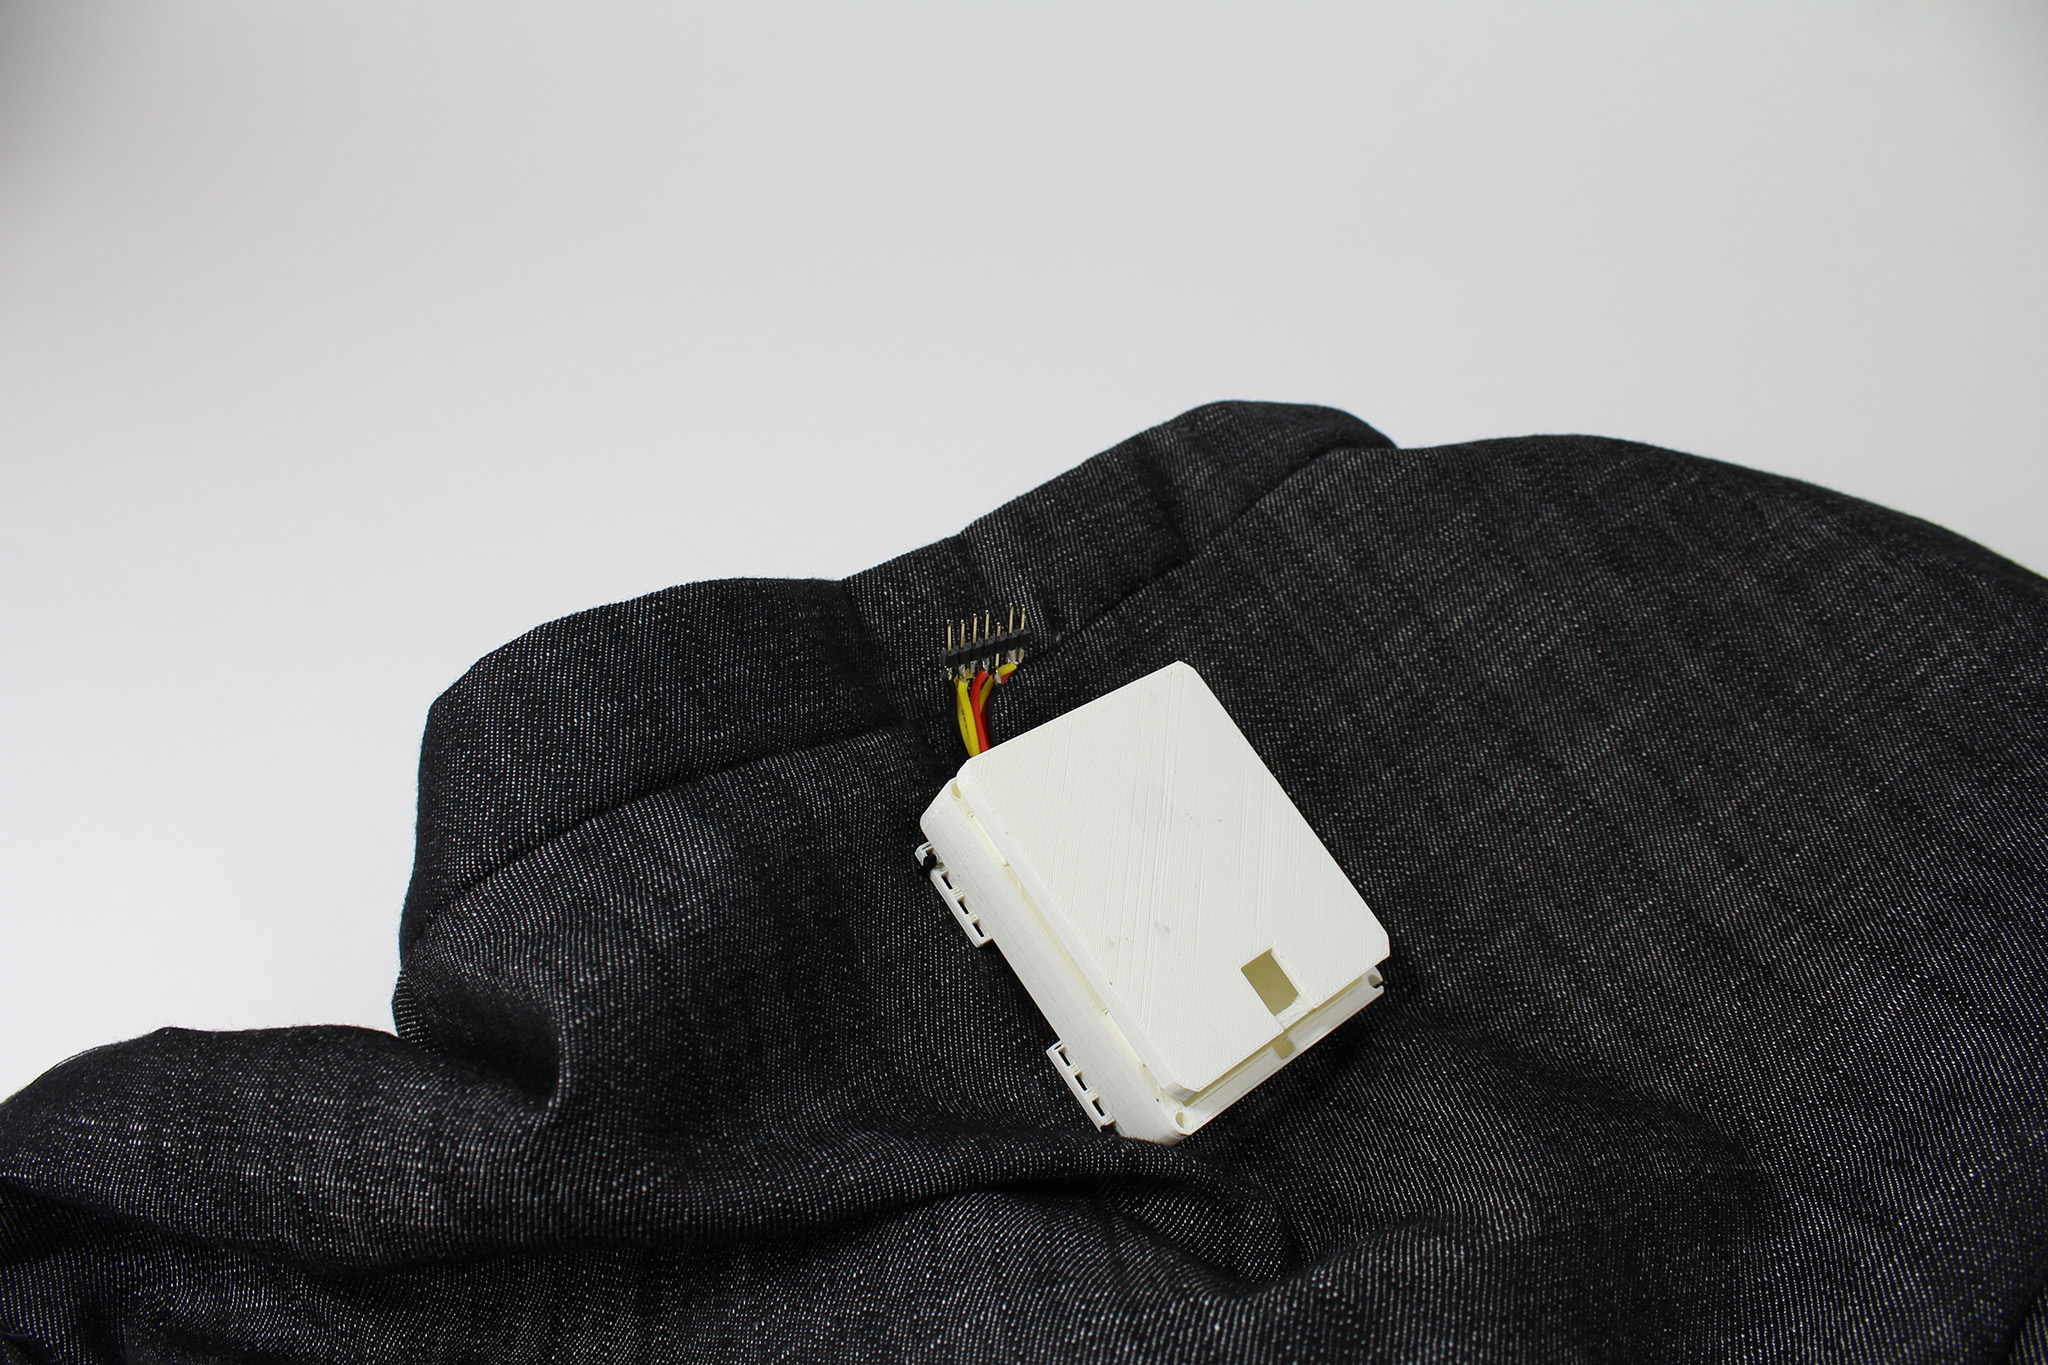 Arduino micro controller and battery housed in 3D printed case sewn onto the upper back.